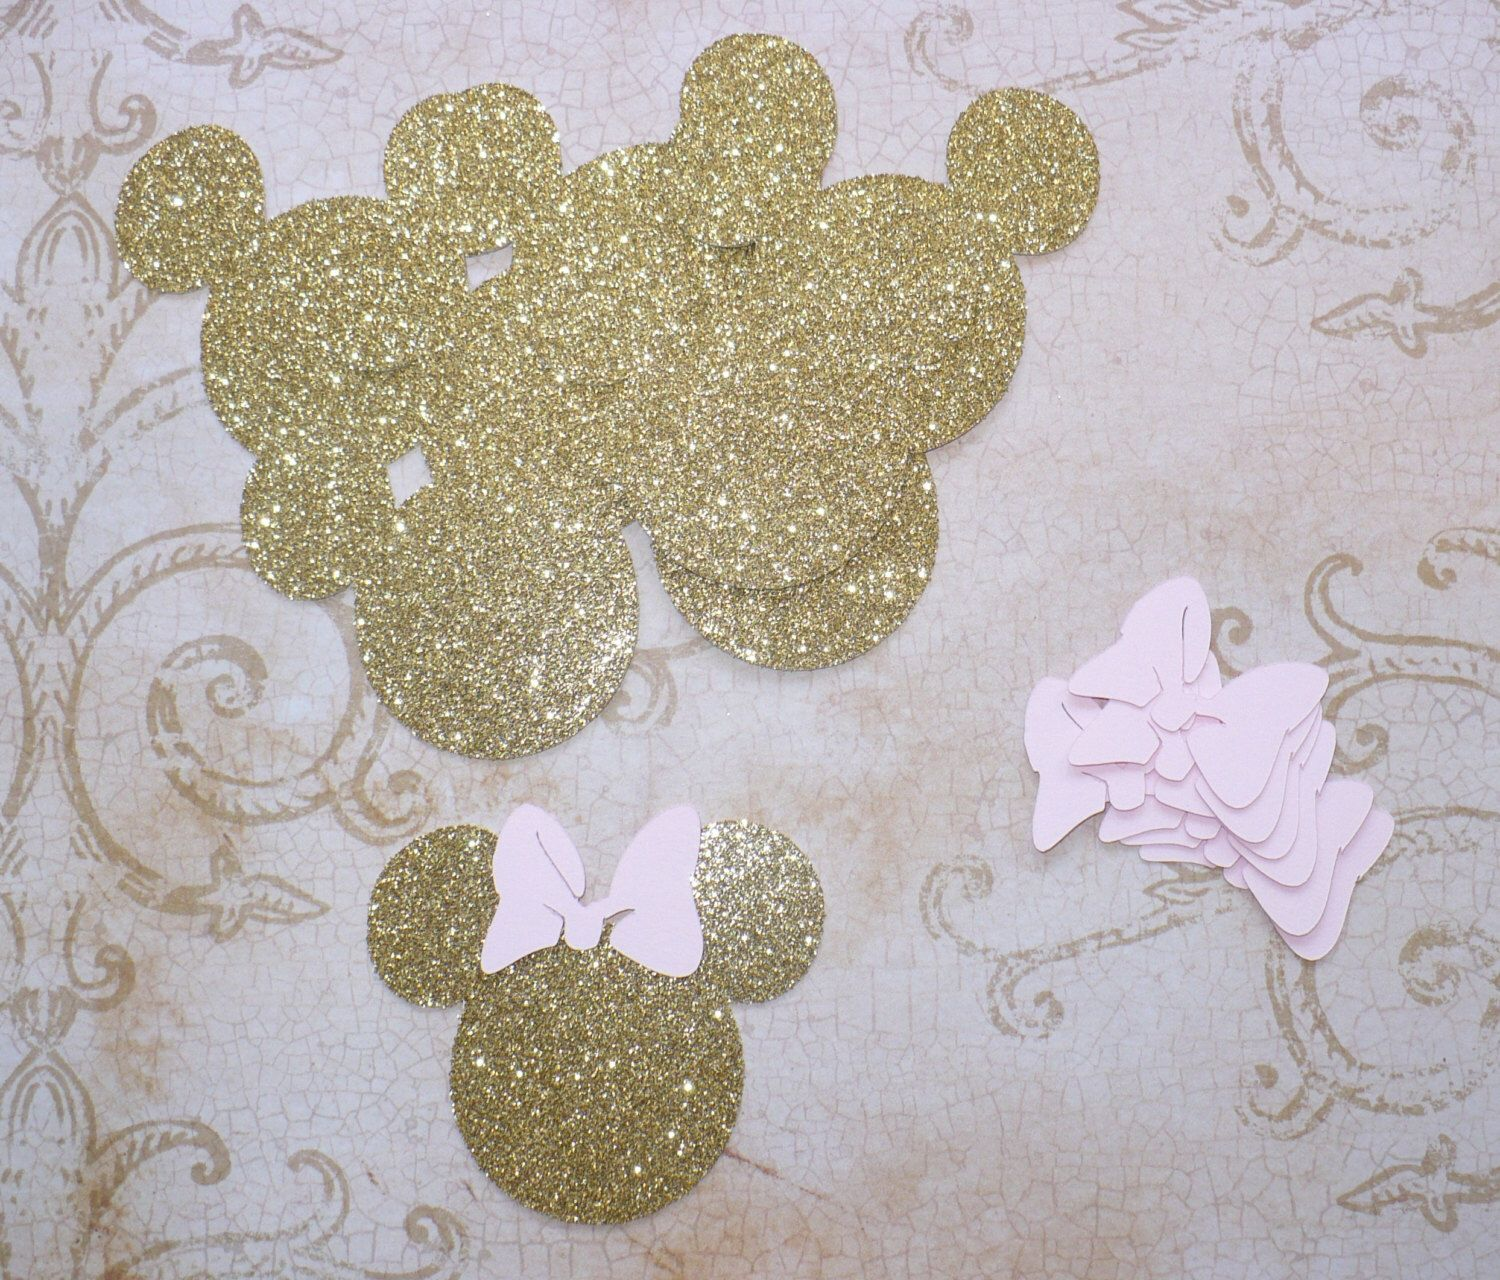 Baby Minnie Gold Glitter Mouse Head Shapes Princess Pink Bows Die Cuts for Cupcake Picks Baby Showers DIY Kids Crafts Birthday Party Tags by sandylynnbscrapping on Etsy https://www.etsy.com/listing/240843046/baby-minnie-gold-glitter-mouse-head